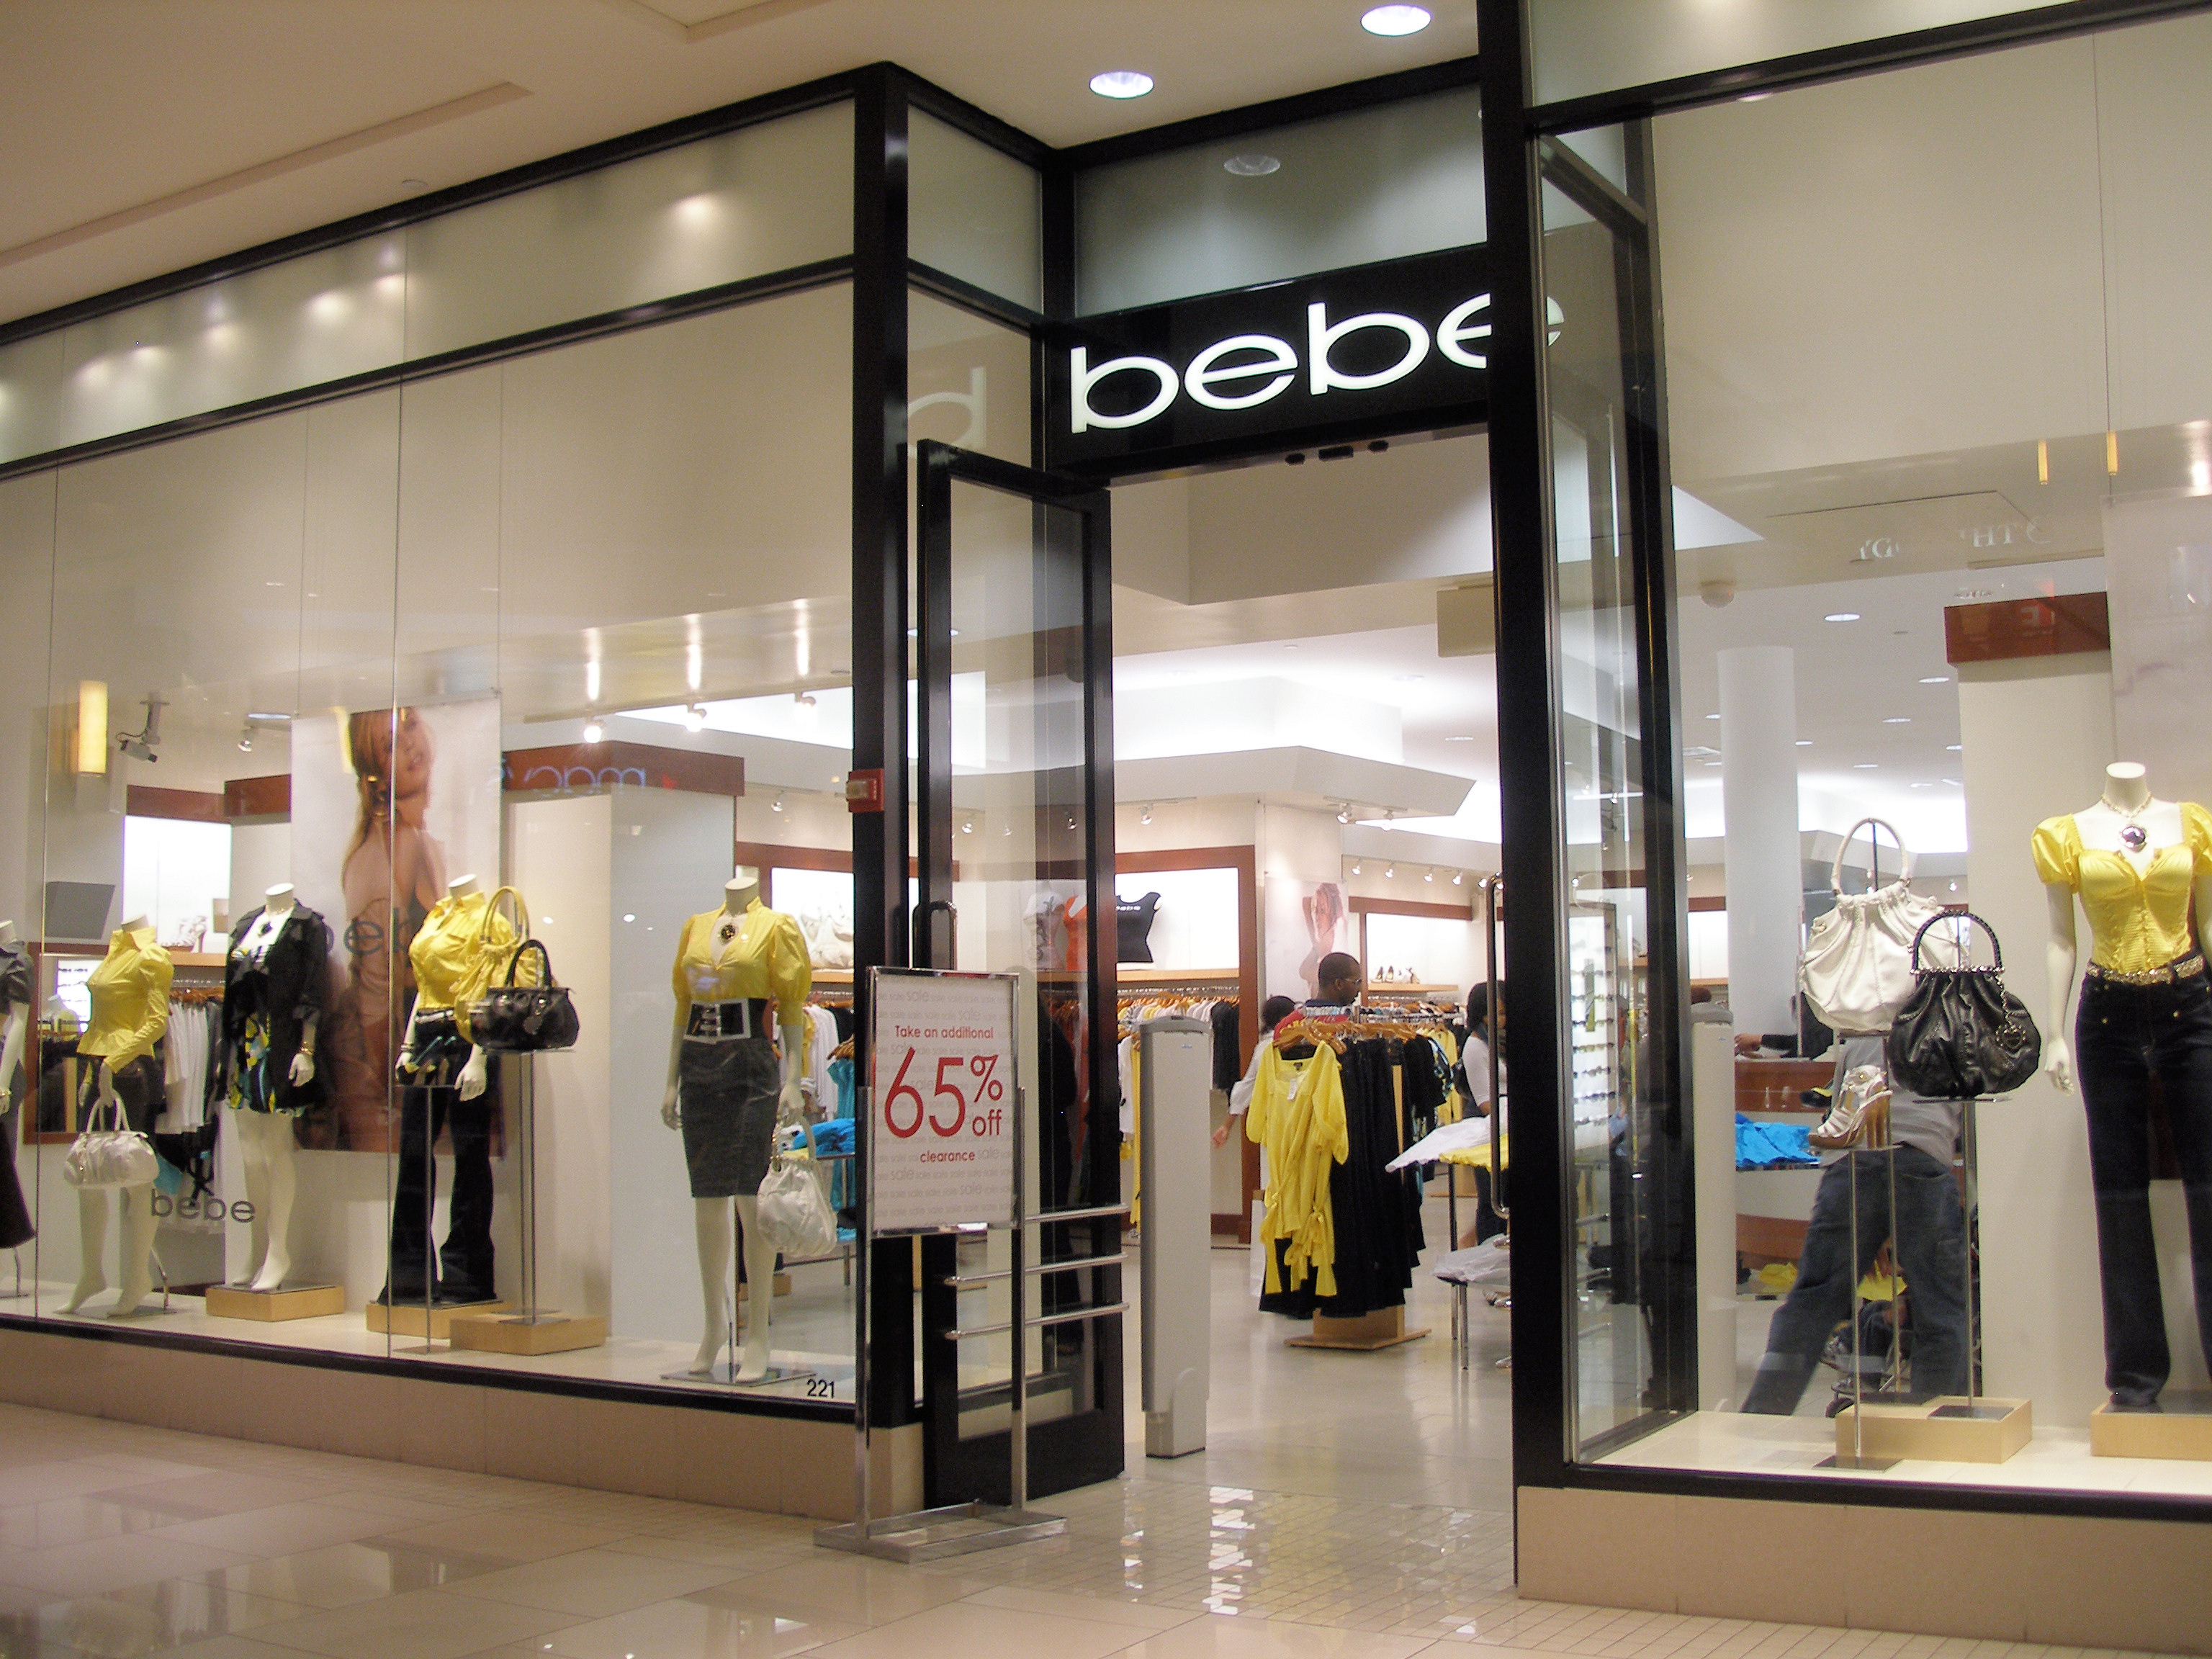 Http Commons Wikimedia Org Wiki File Bebe Store At Aventura Mall Jpg